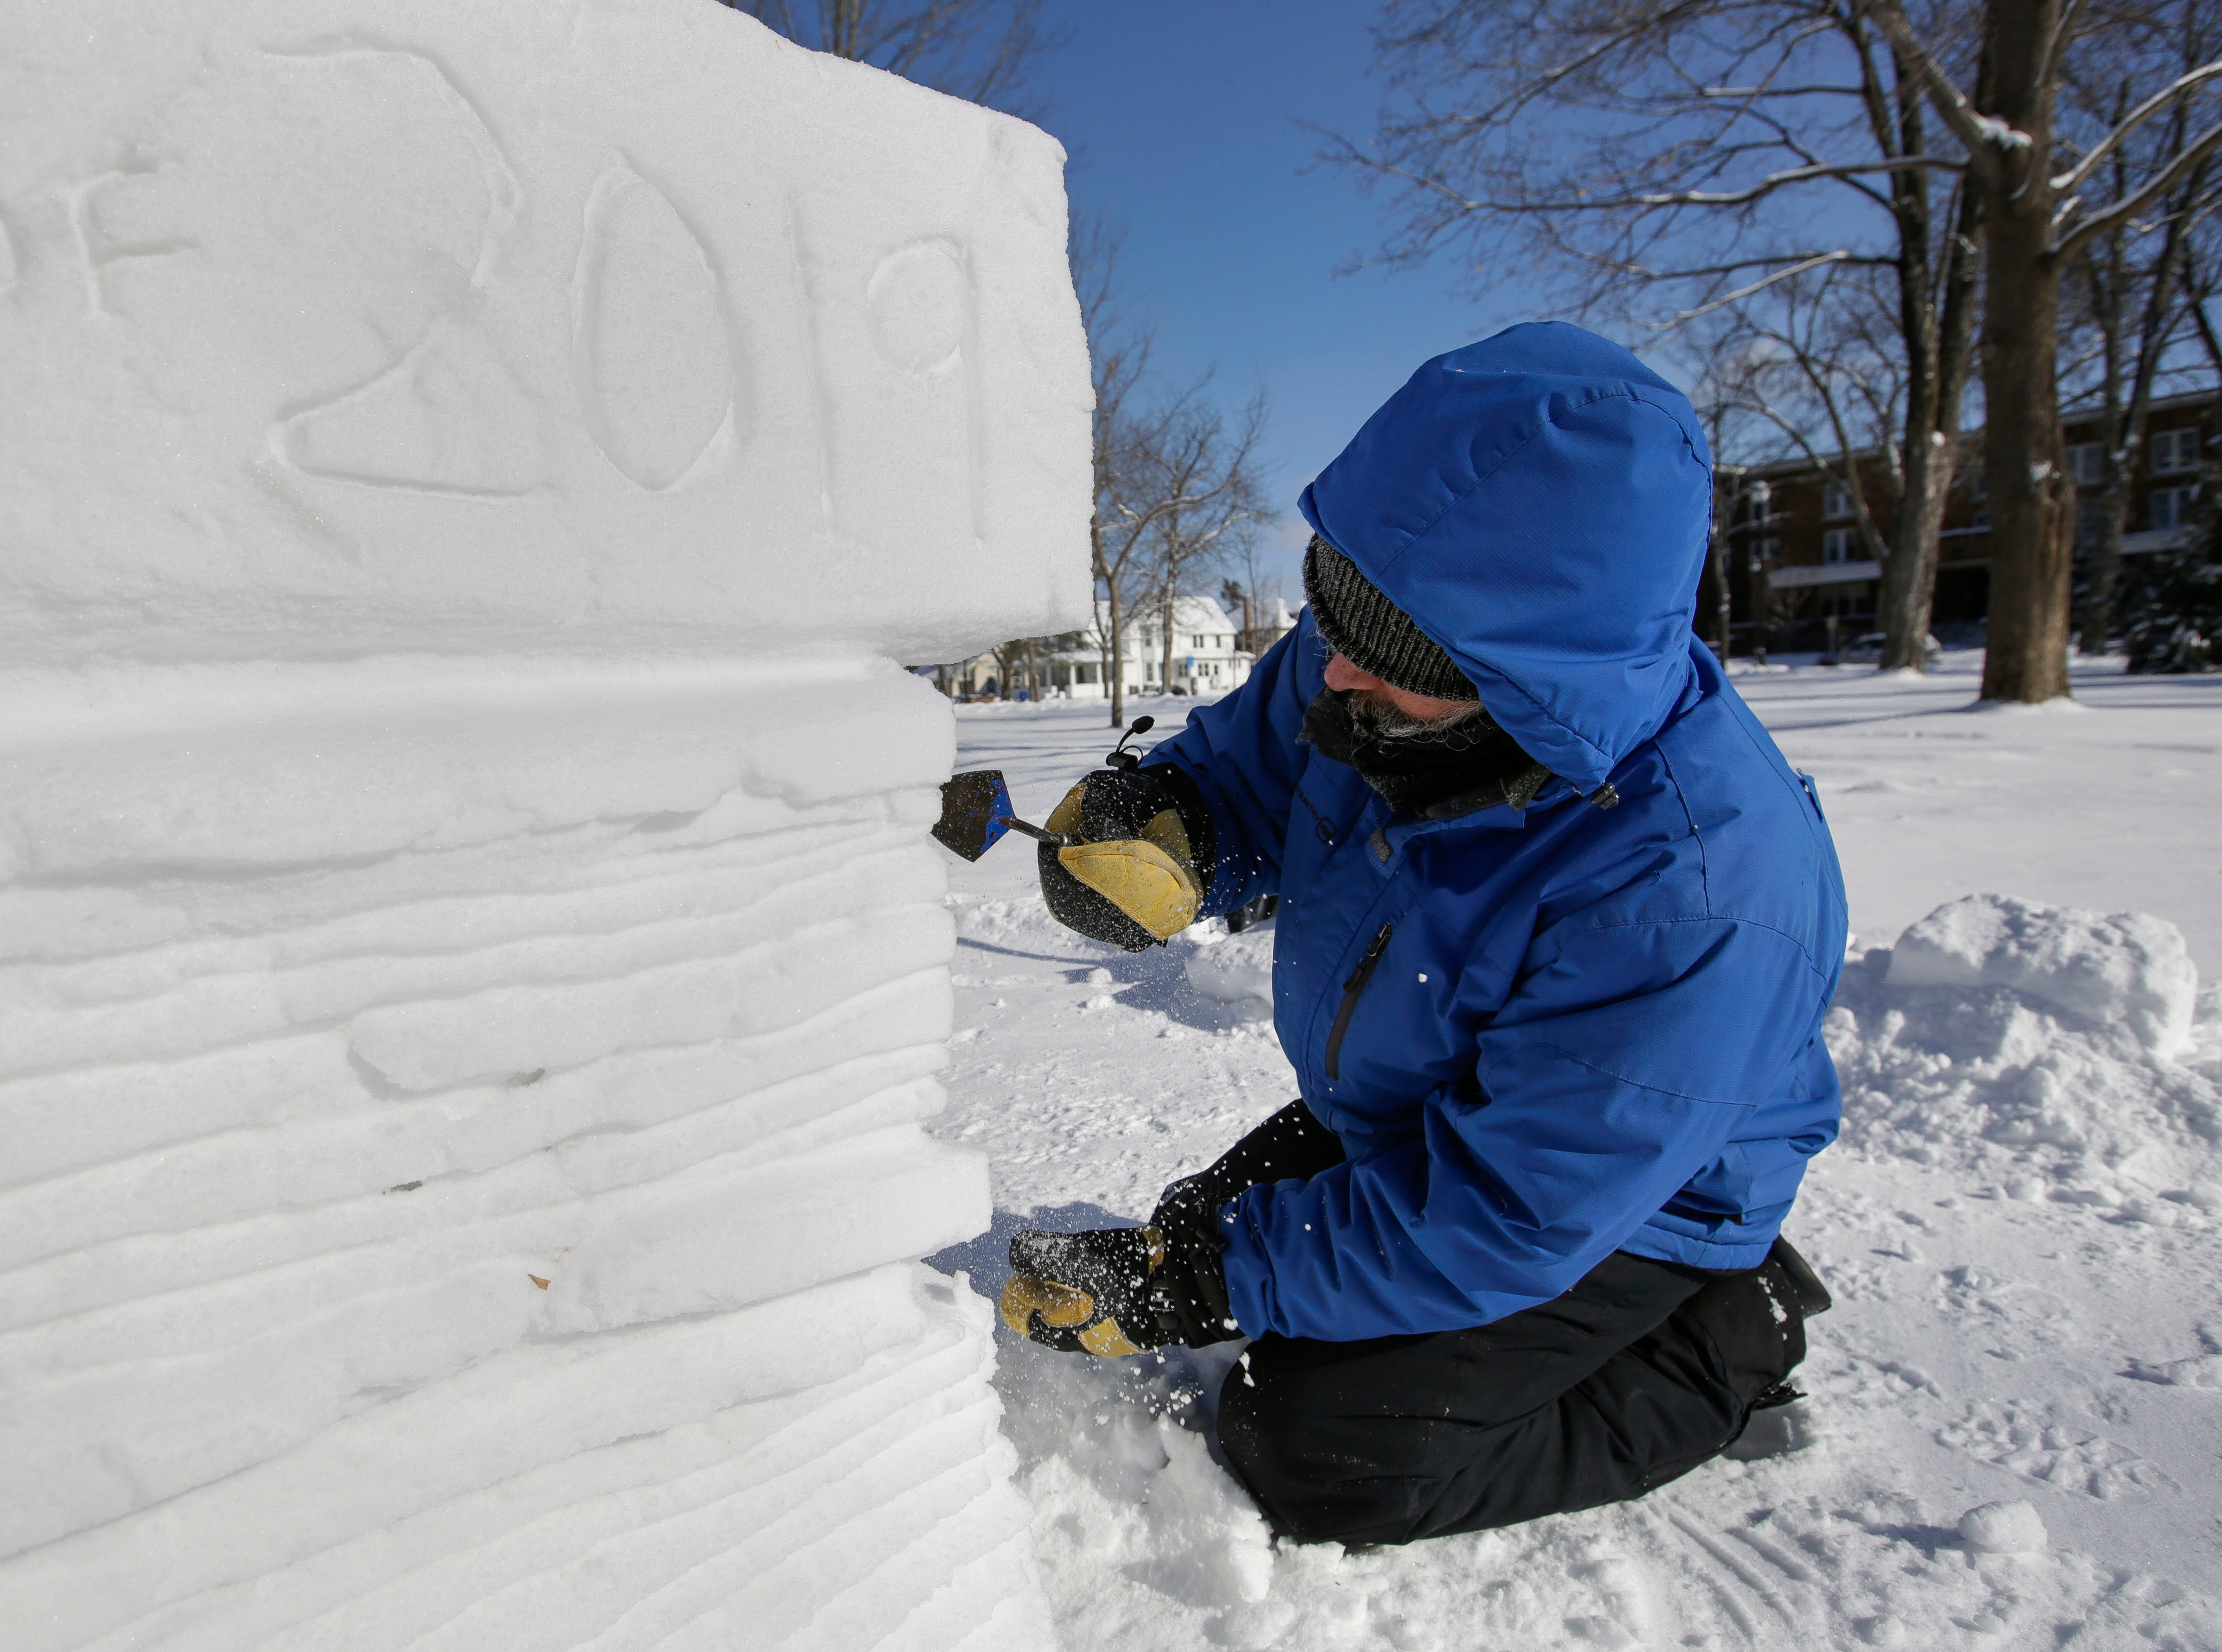 Local artist Jef Schobert carves out details on a sculpture on Friday, February 8, 2019, on the UWSP campus in Stevens Point, Wis. The sculpture is to commemorate UWSP's 125th anniversary.Tork Mason/USA TODAY NETWORK-Wisconsin